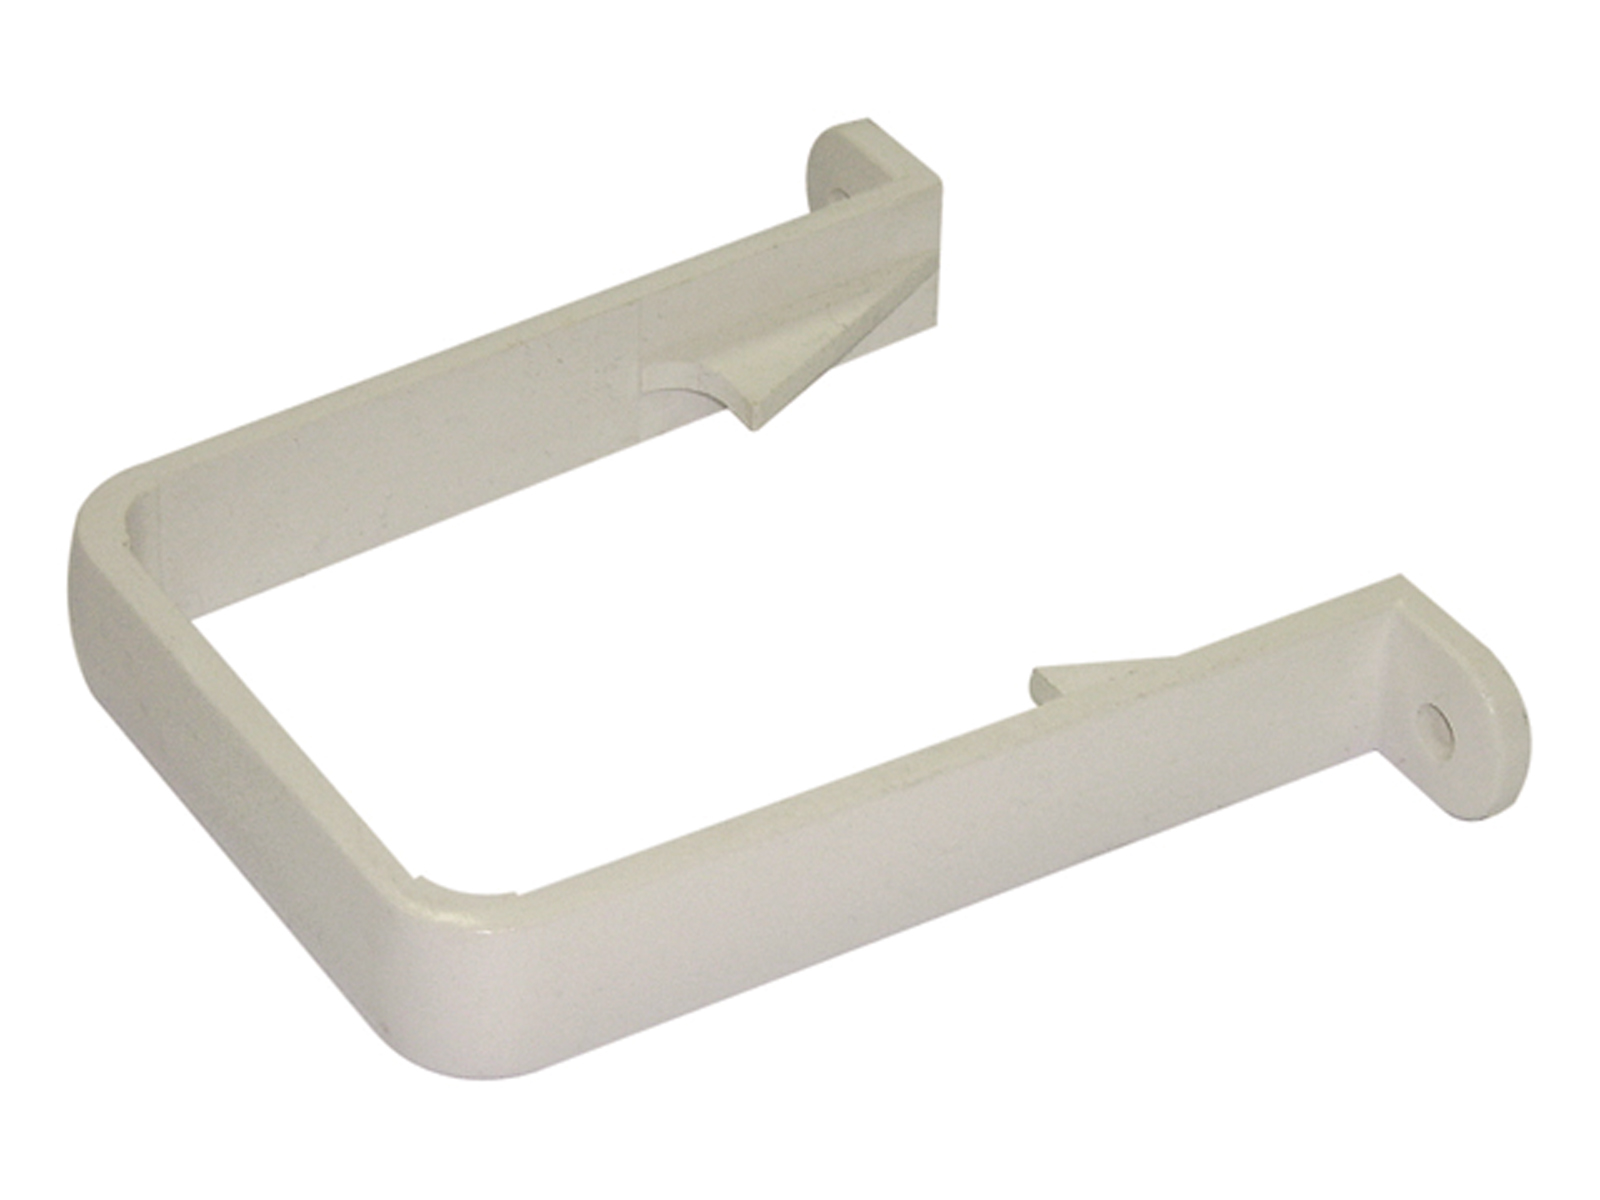 FLOPLAST RCS1WH 65MM SQUARE DOWNPIPE -  PIPE CLIP - WHITE